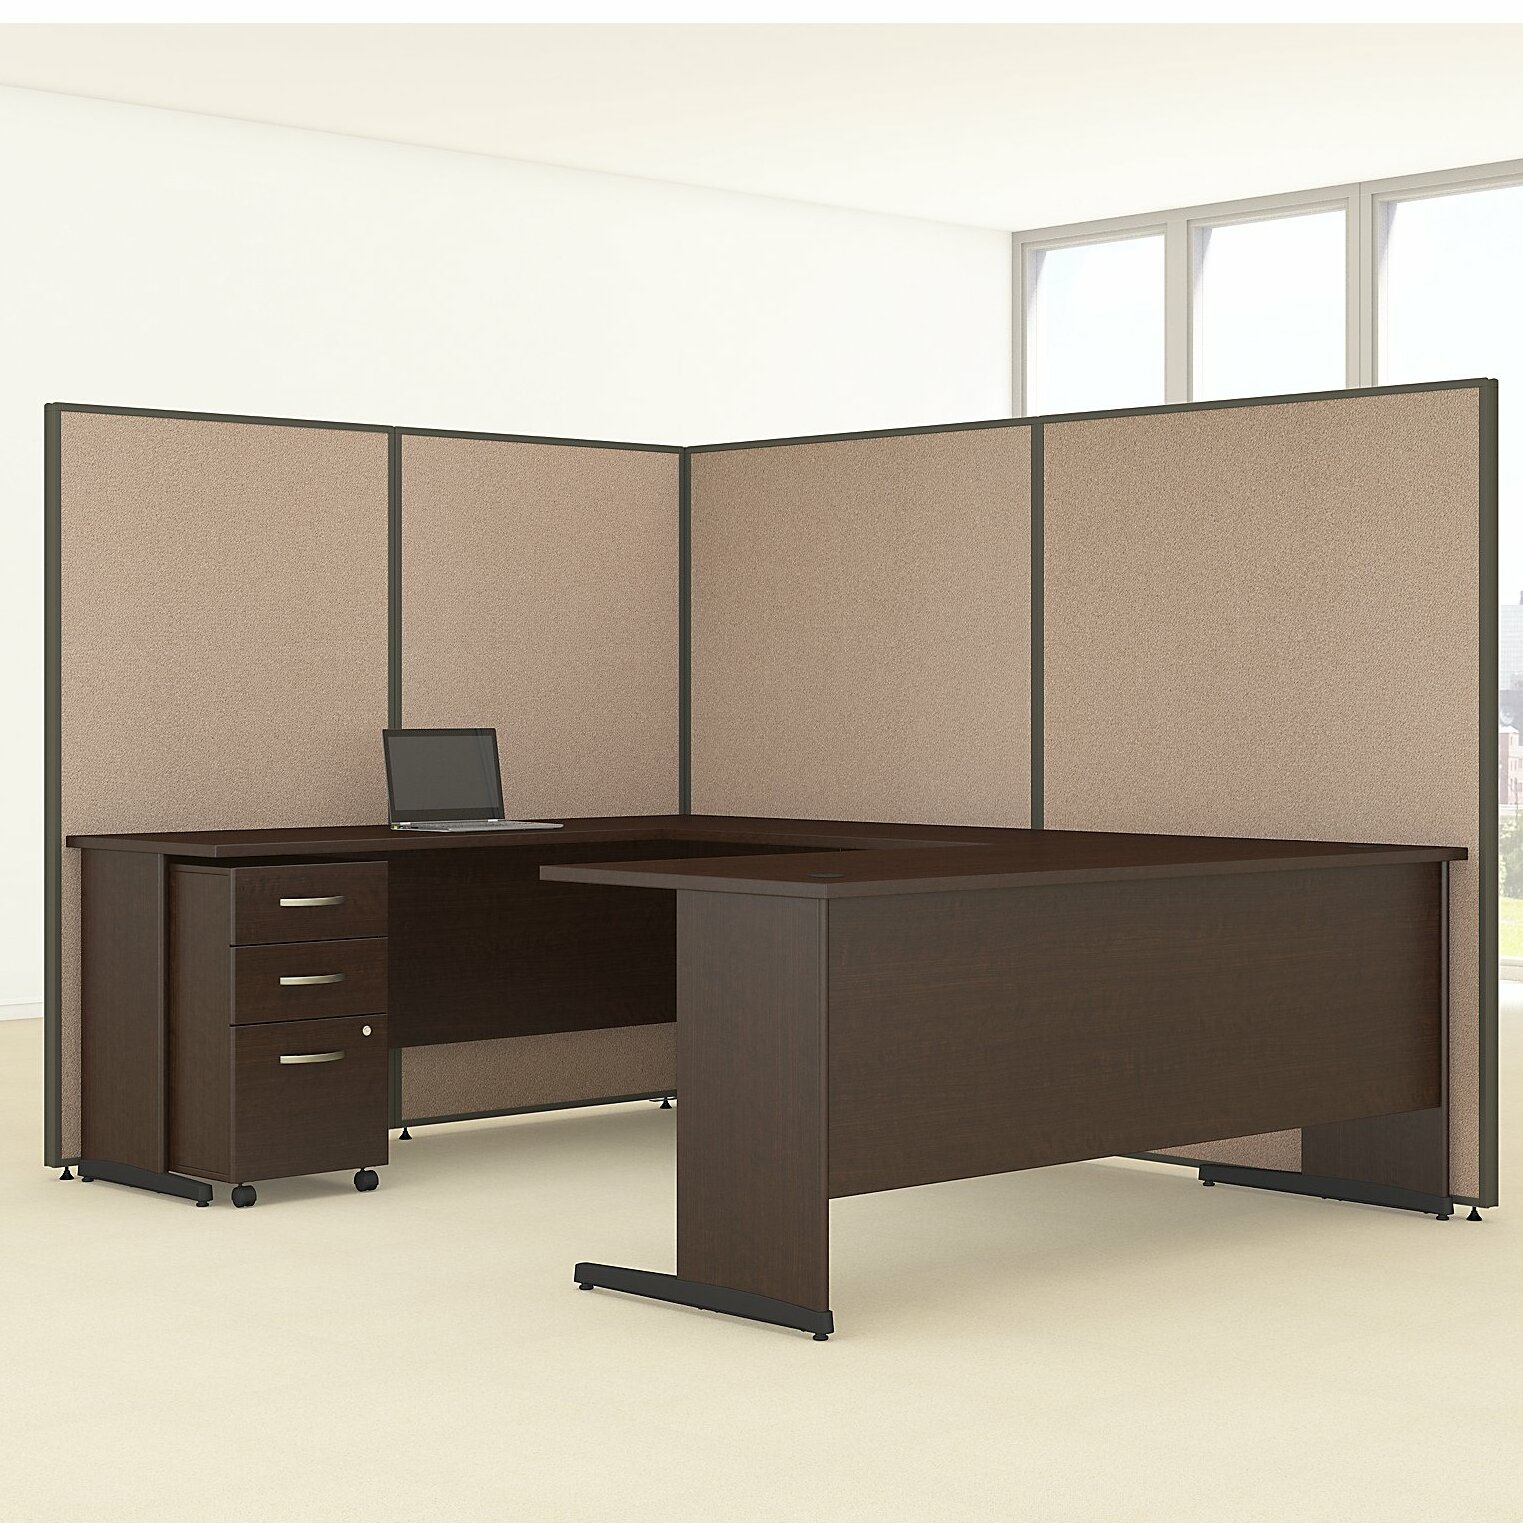 3 Piece Office Furniture ~ Bush business furniture propanel piece u shape desk